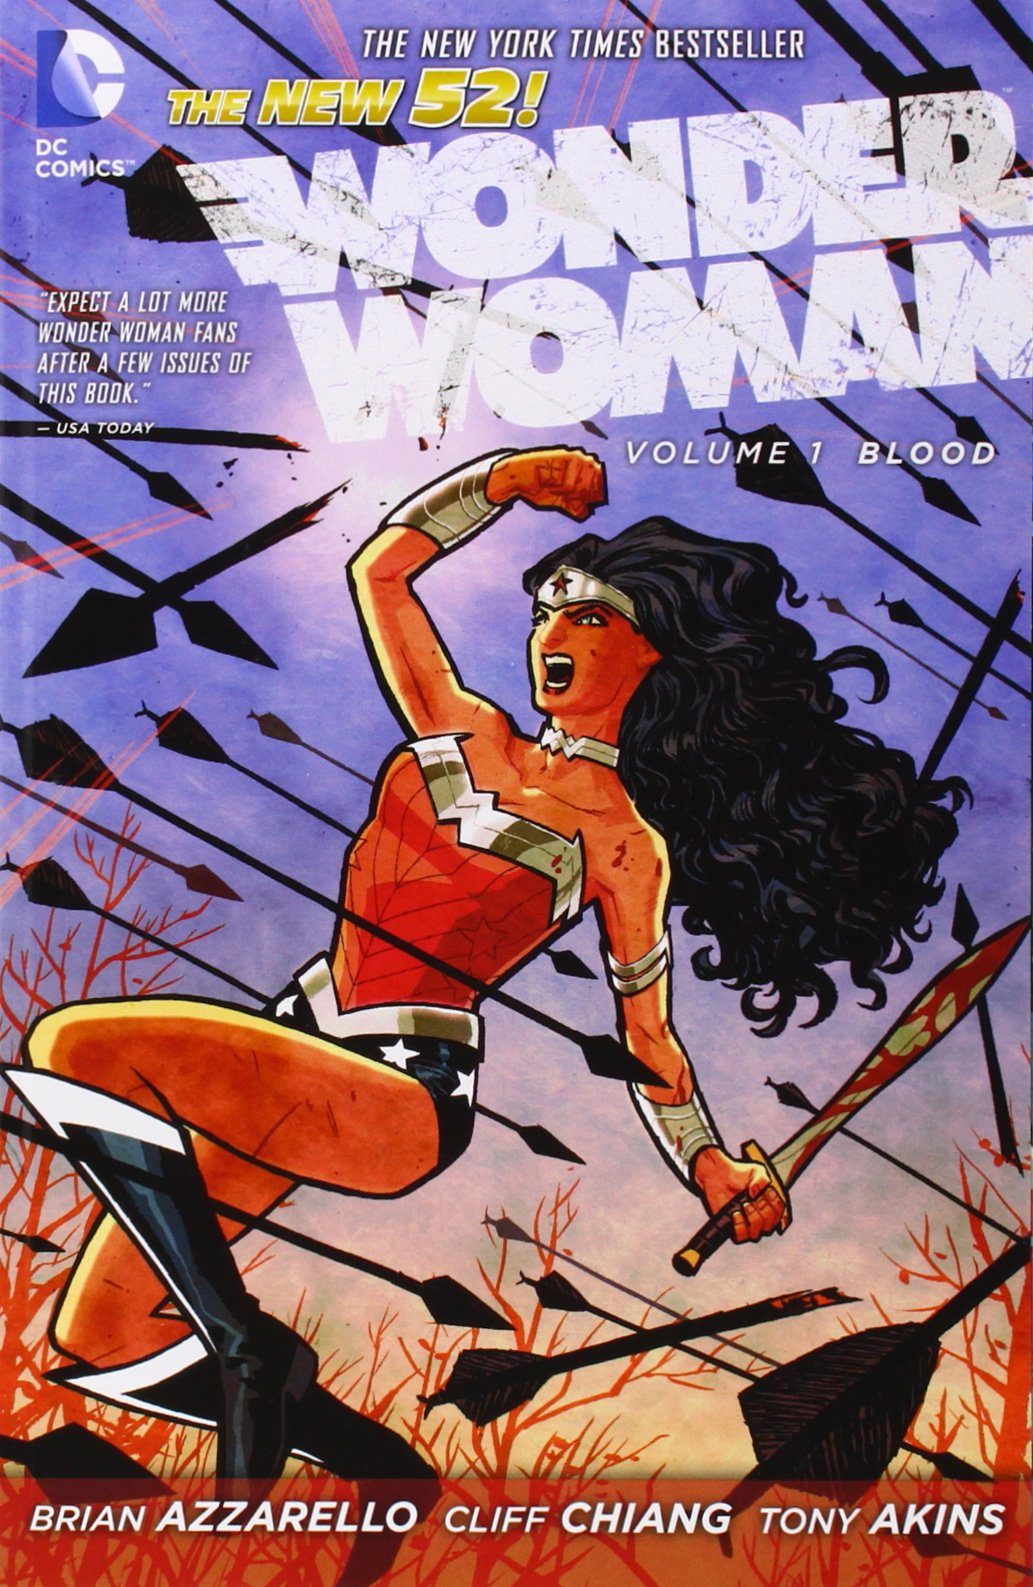 Image result for New 52 Wonder Woman vol 1 tpb